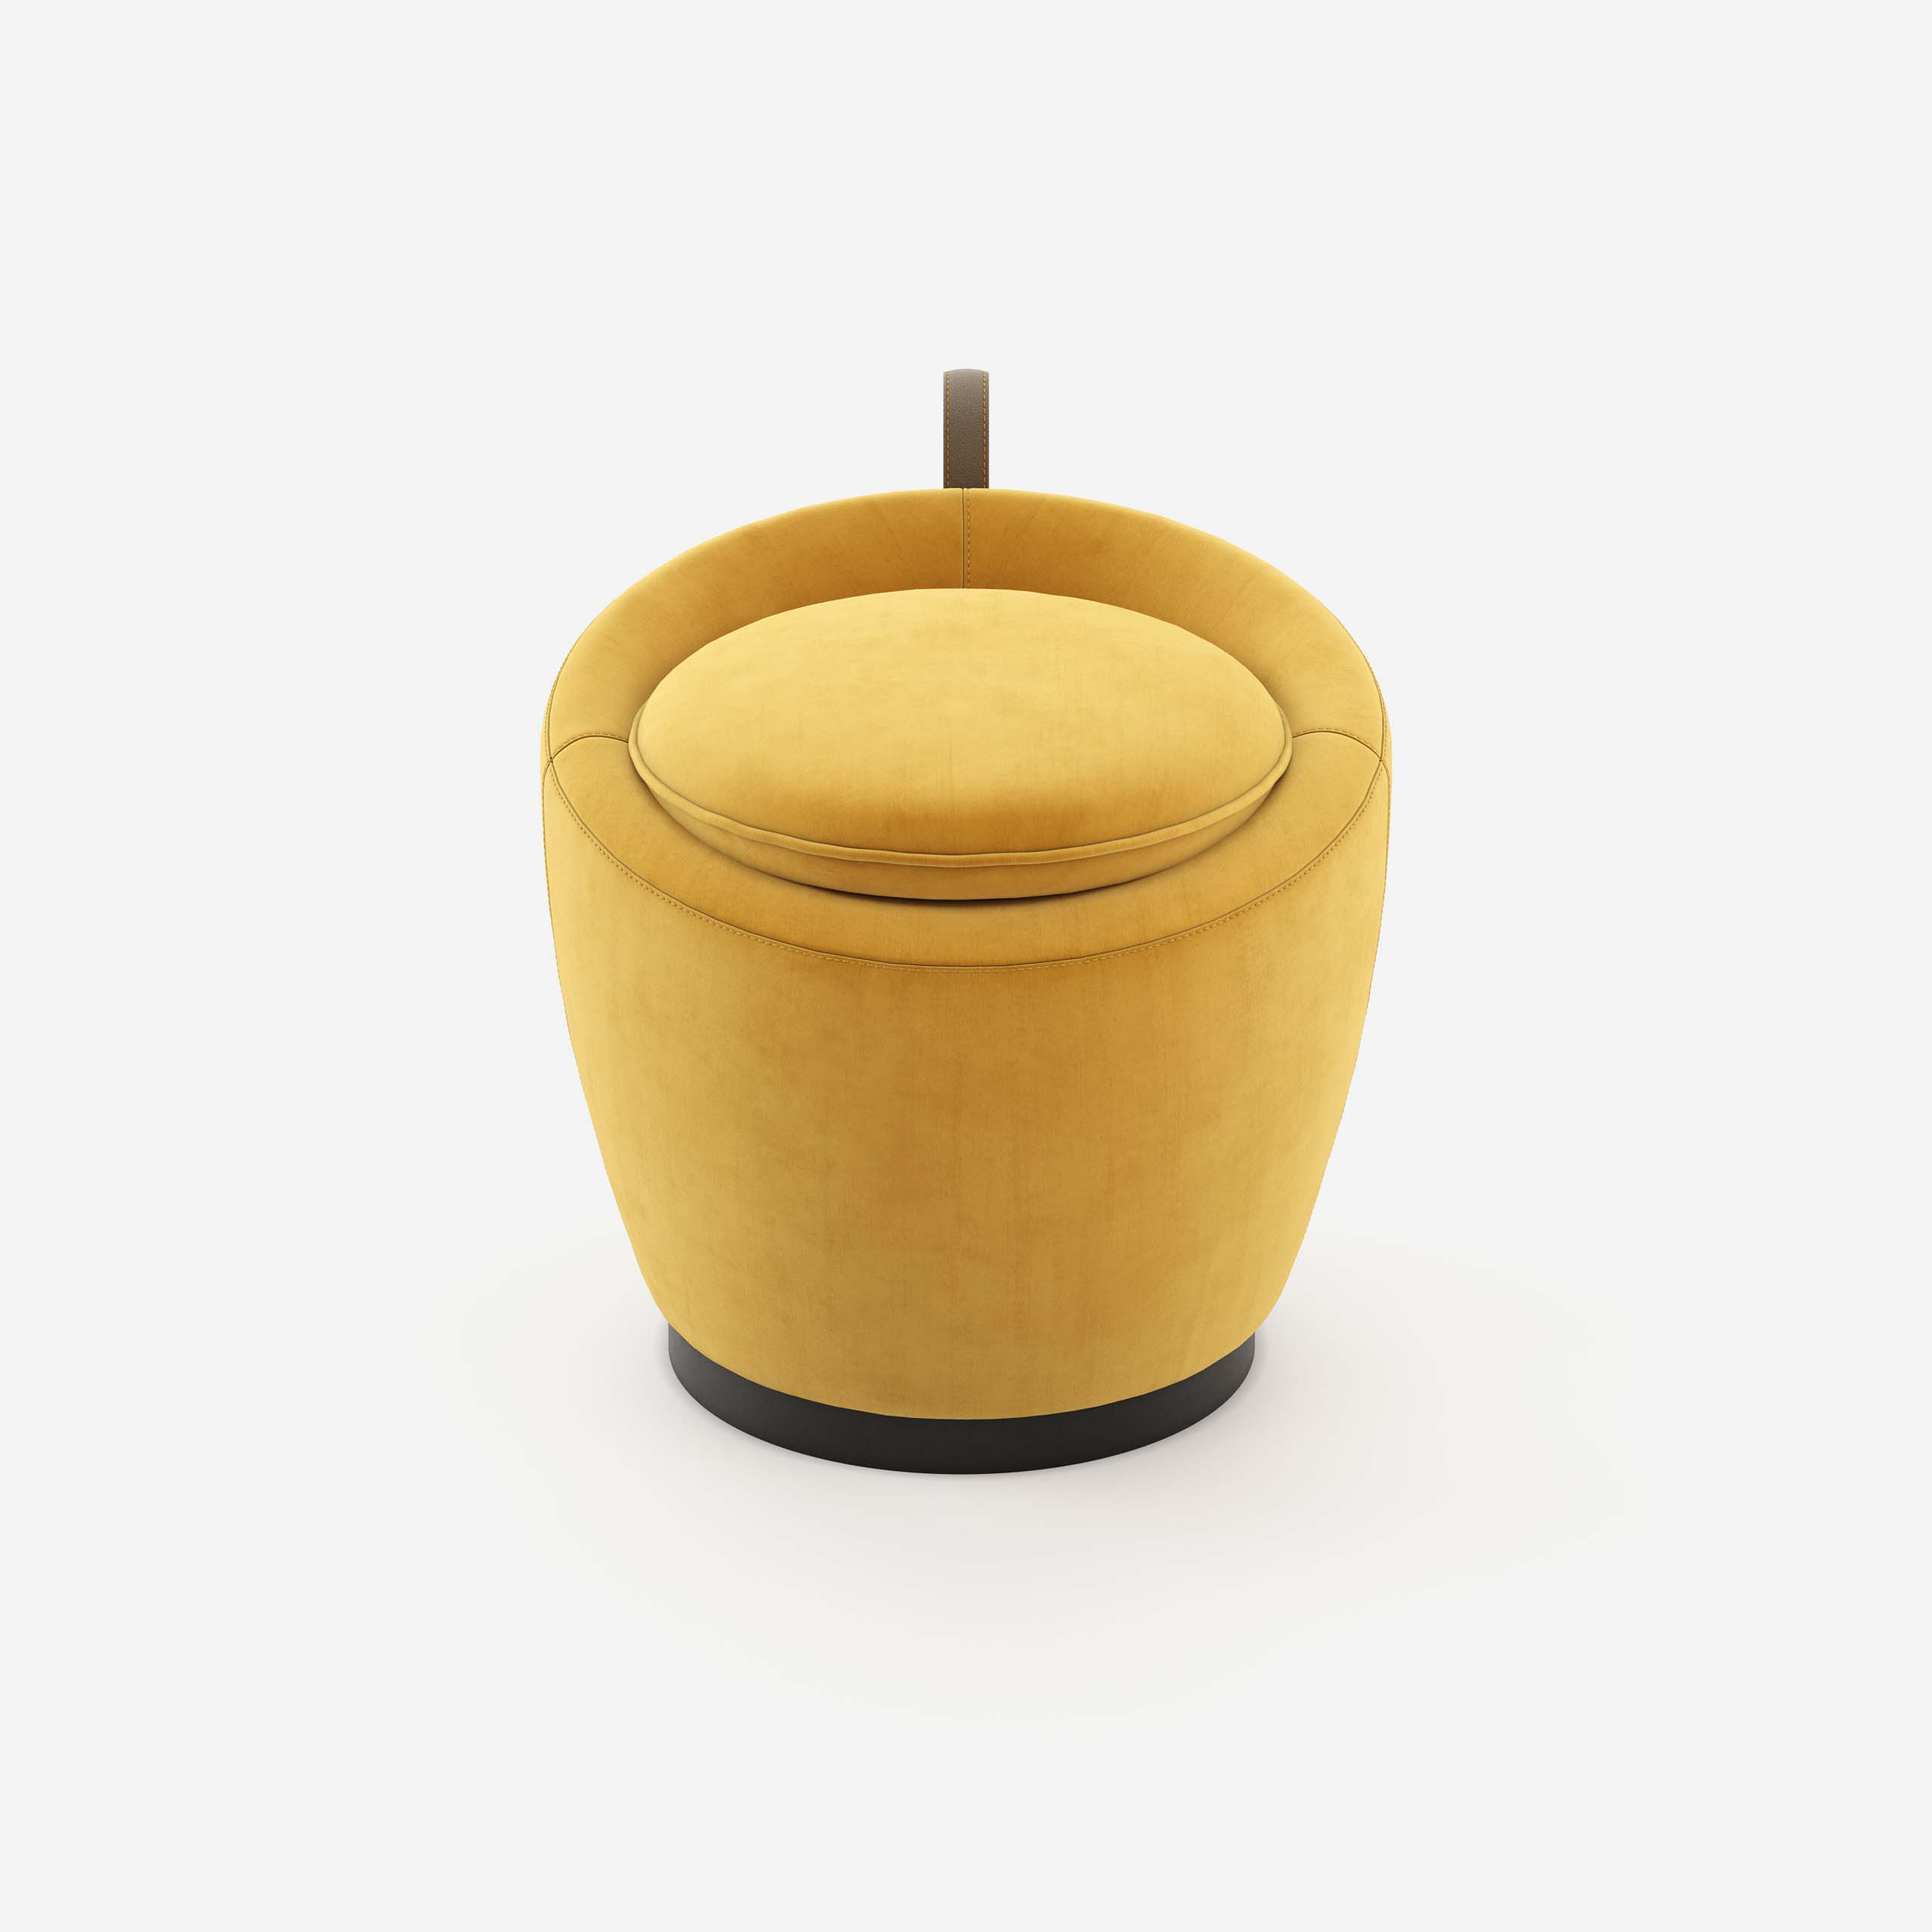 Liz pouf - domkapa new collection 2021 - home decor